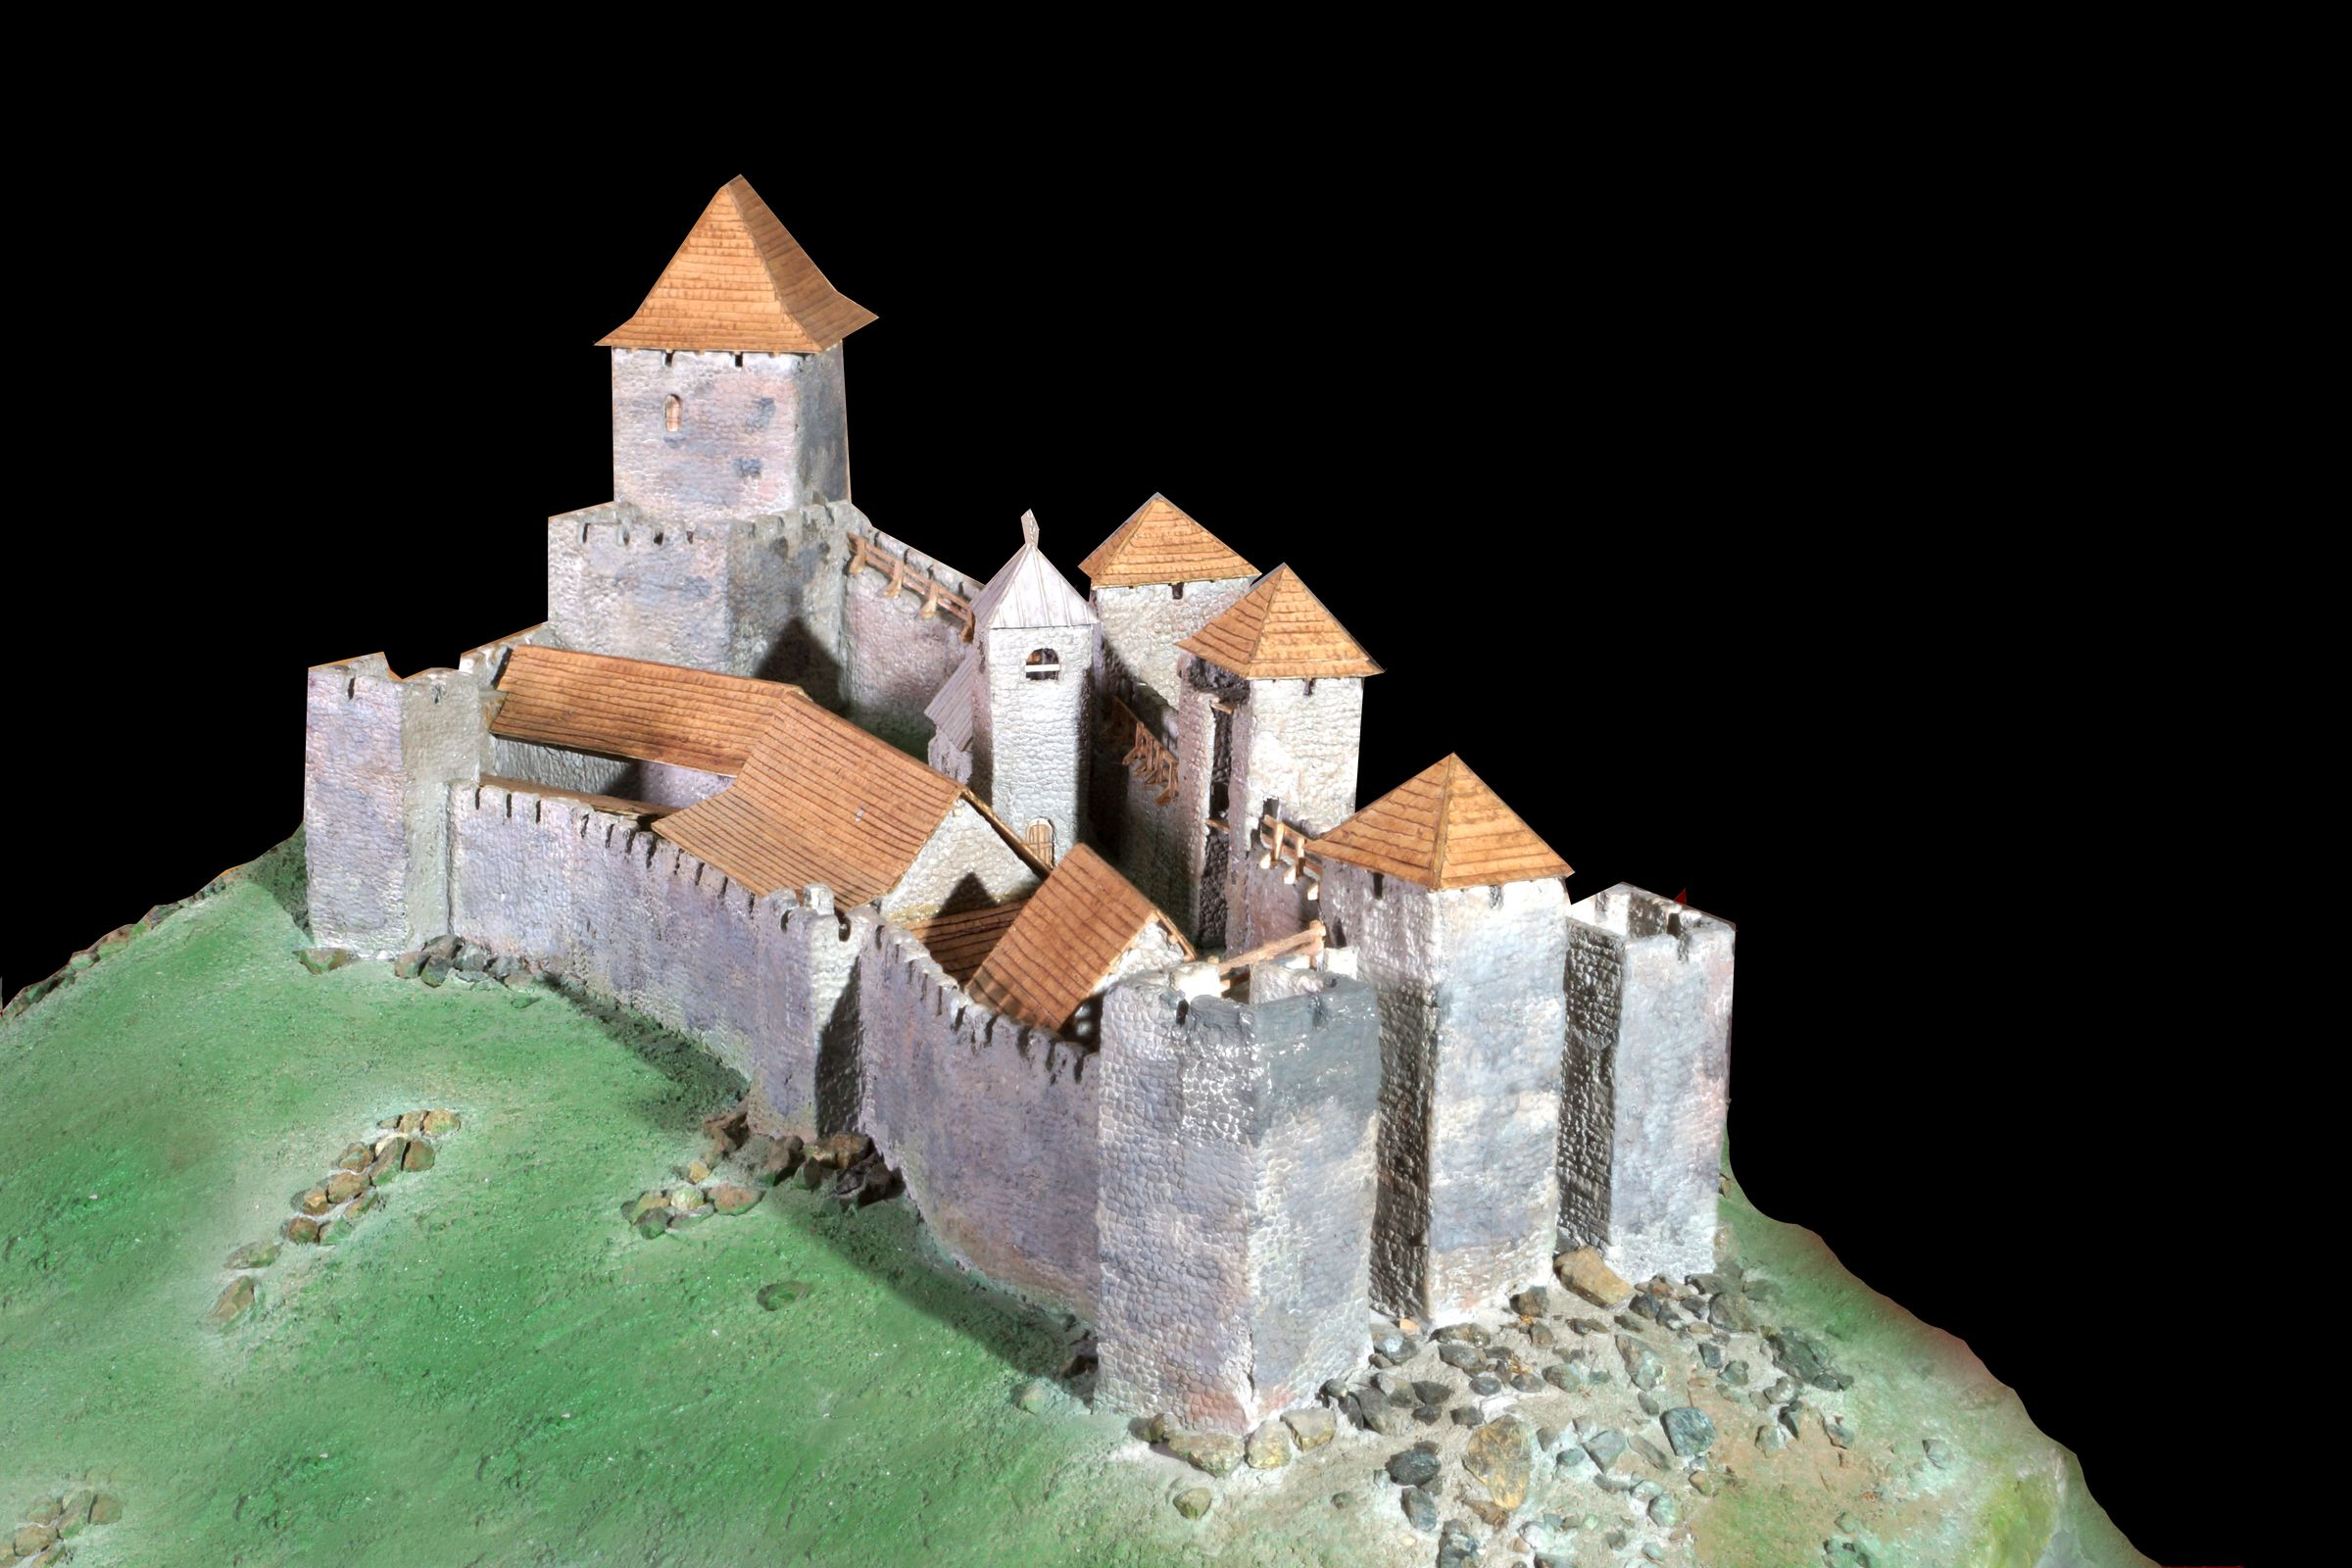 Model of the Maglič Fortress